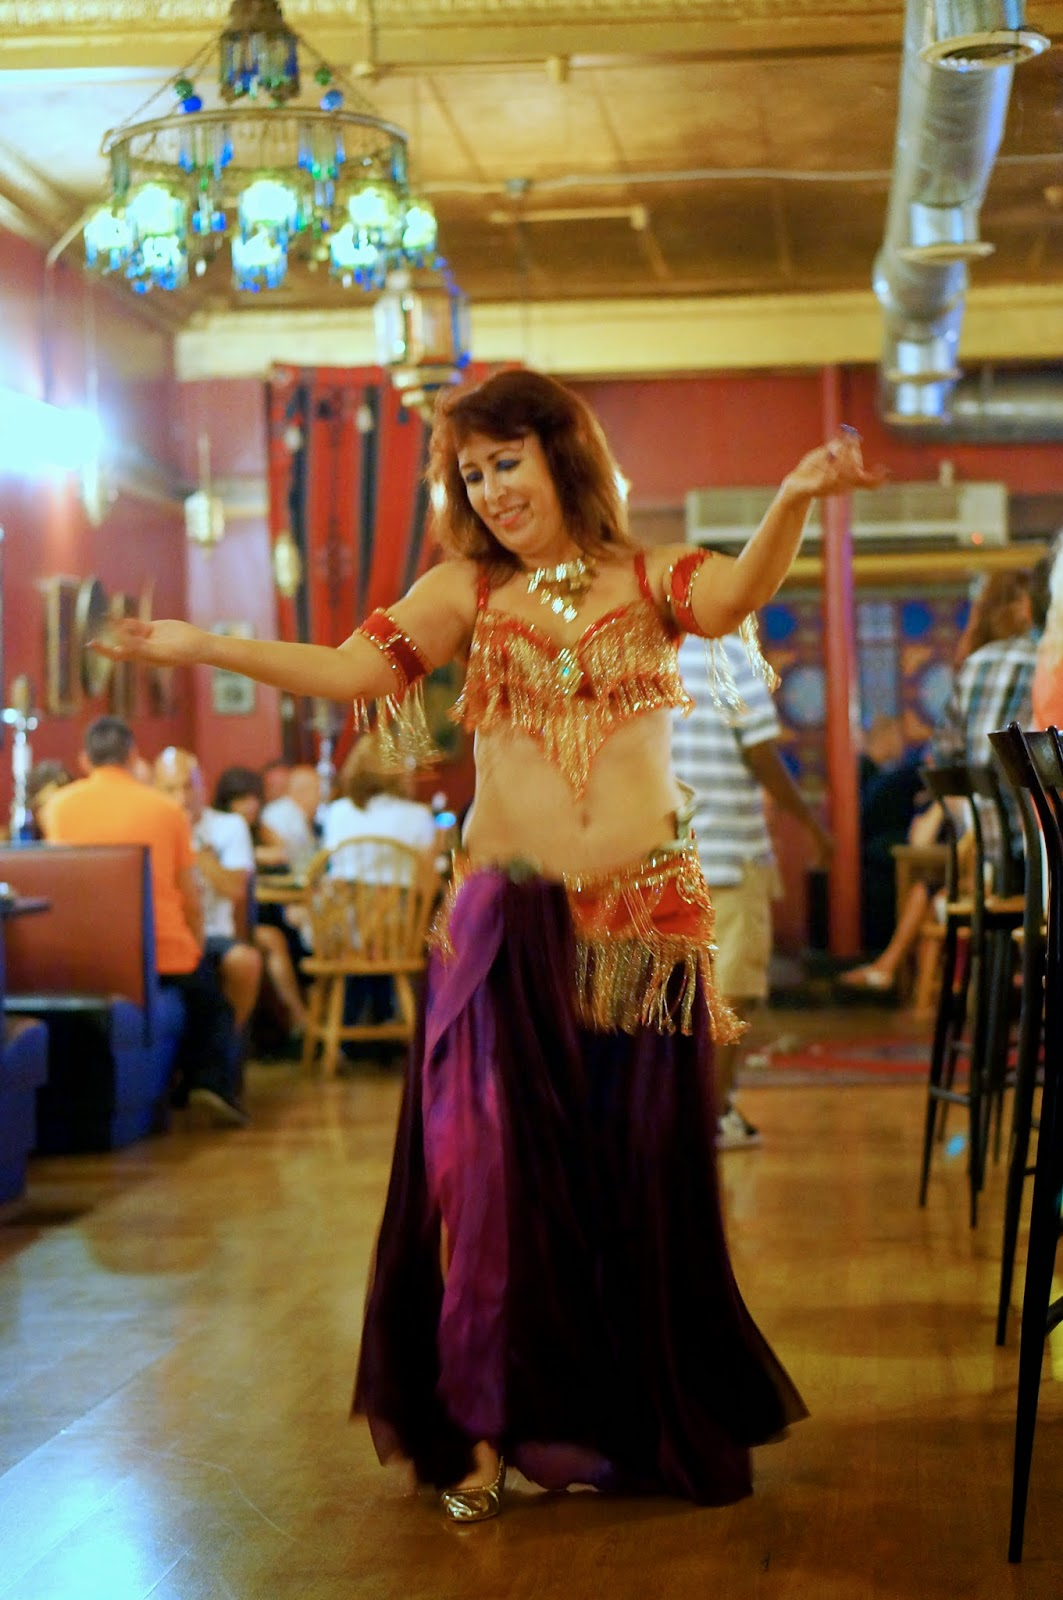 Baklave,Belly Dancer,Birthday Spree, Egypt, Elvis, Exotic Evening, Feta Dip, Hookah,Hummas,Pita Bread,Shish Kabob,ShishTawook,Stuffed,Grape Leaves,The Mirage of Knoxville Cairo Cafe,Wine.